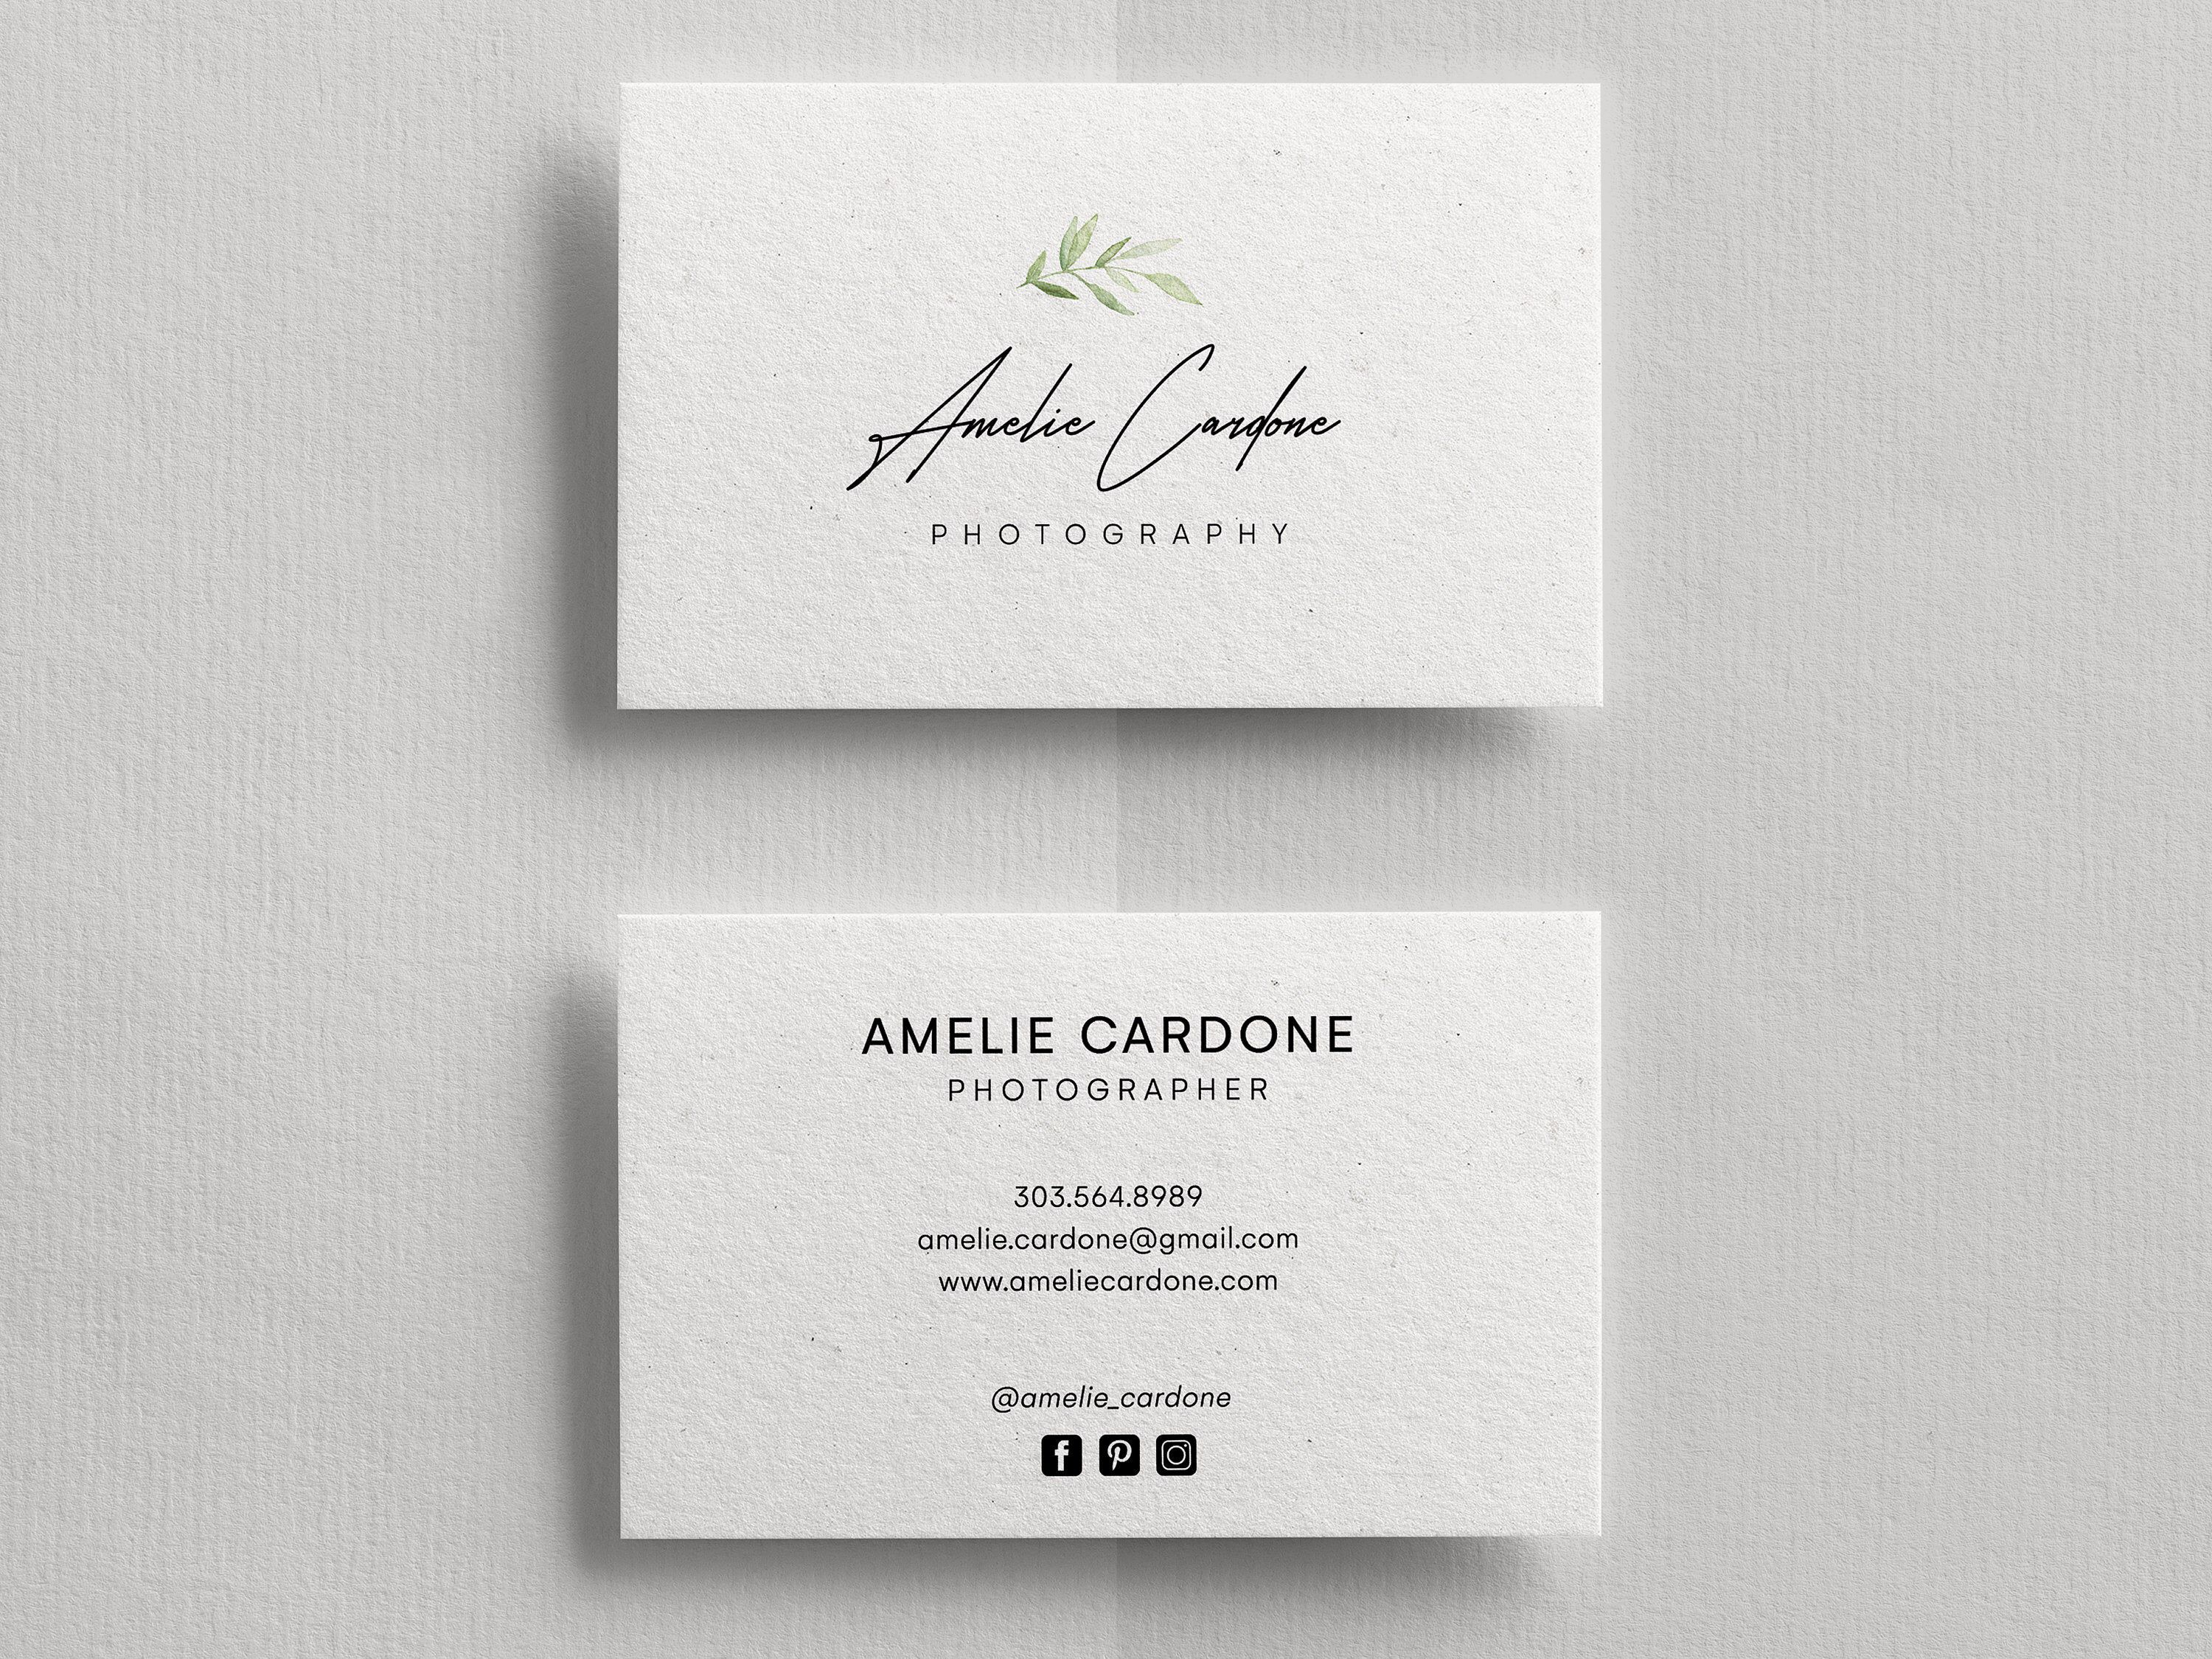 Business Card Template Business Cards Business Card Design Etsy Photography Business Cards Photography Business Cards Template Business Cards Photography